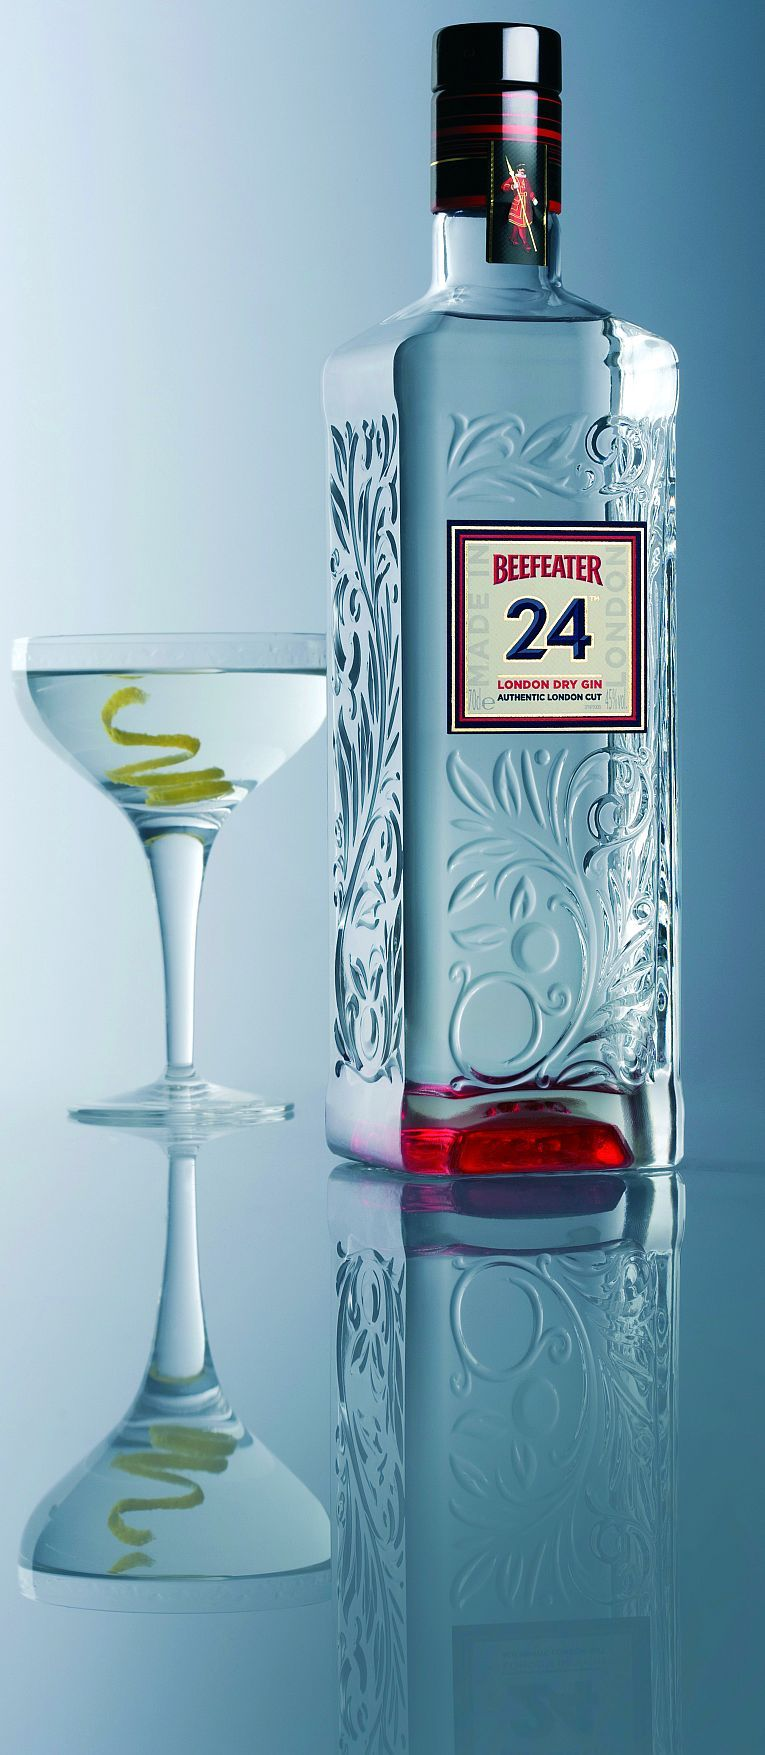 Beefeater Cocktail Spirits Amp Cocktails Gin Brands Gin